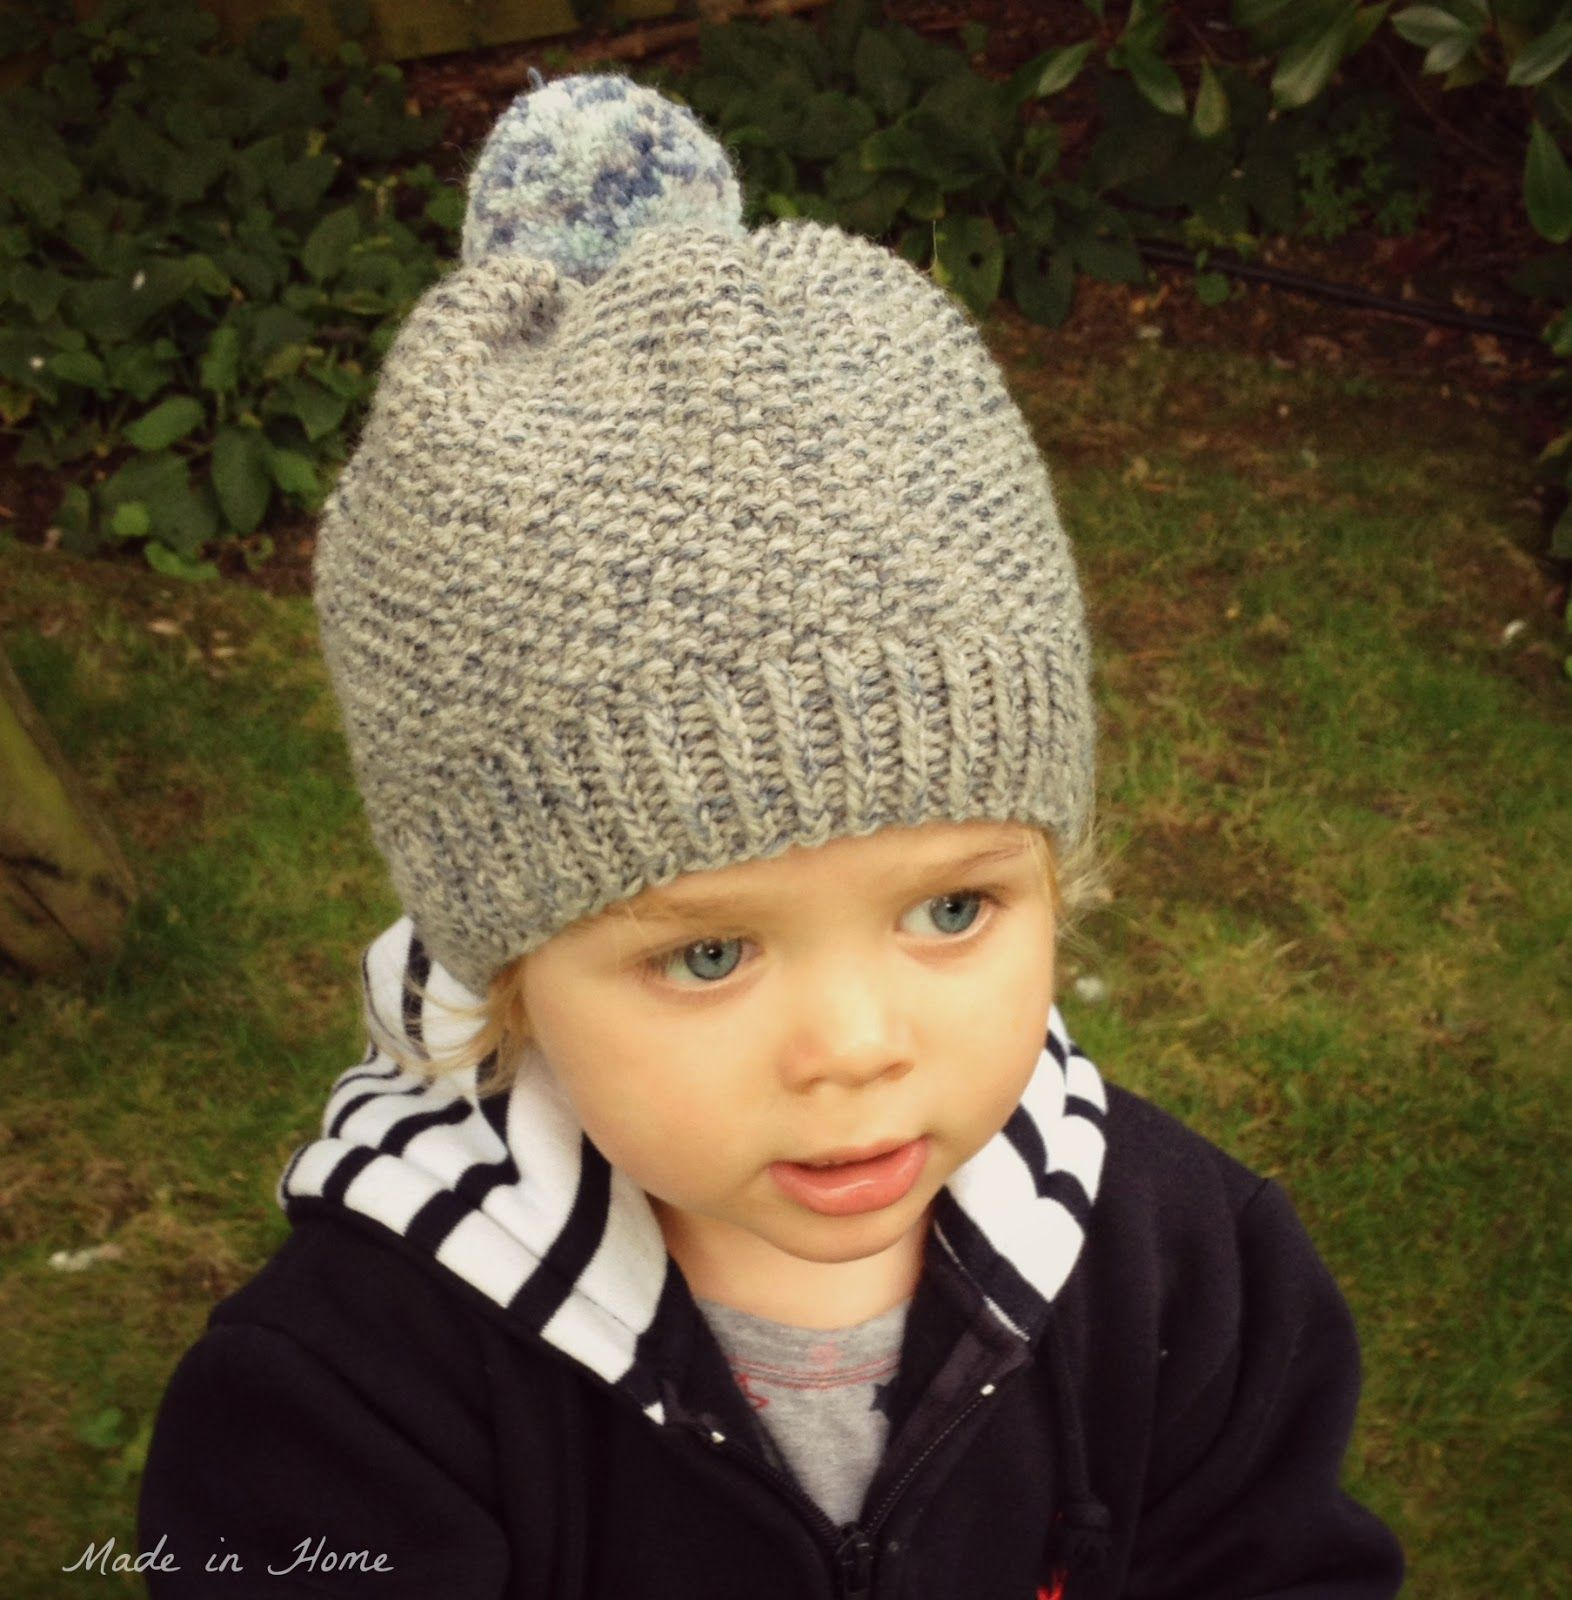 Knitting Patterns For Toddler Hats : Made in Home: Toddler Pompom Beanie Hat A free pattern ...